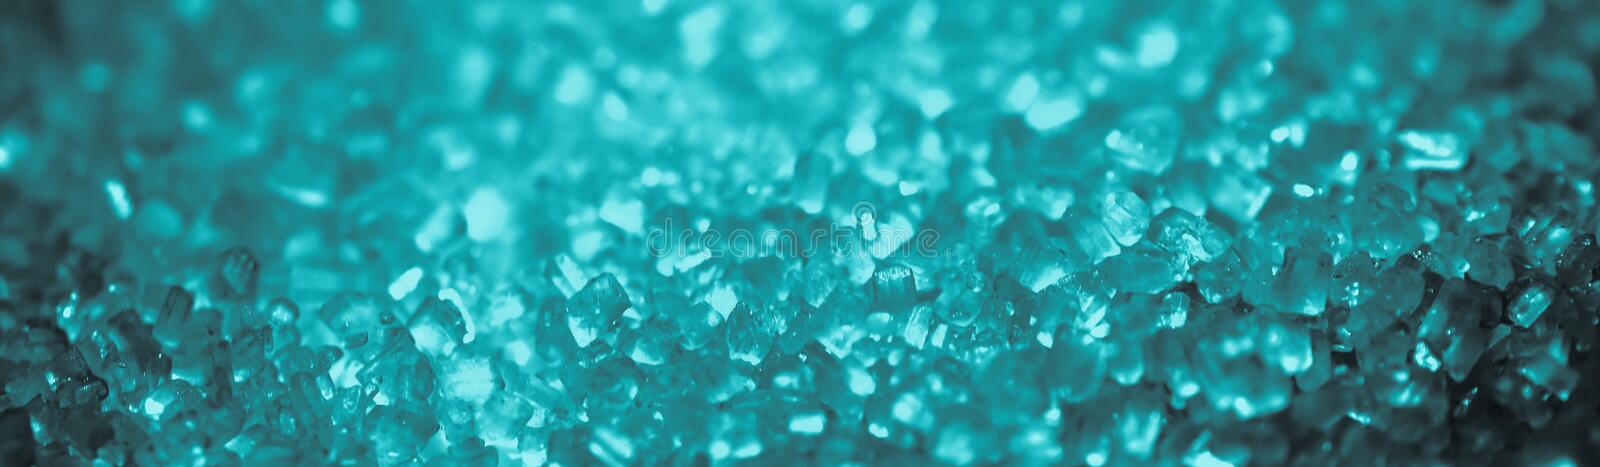 Bokeh cubes Background. Texture Colorfull Blurred abstract background for birthday, anniversary, wedding, new year eve or Christma stock photo